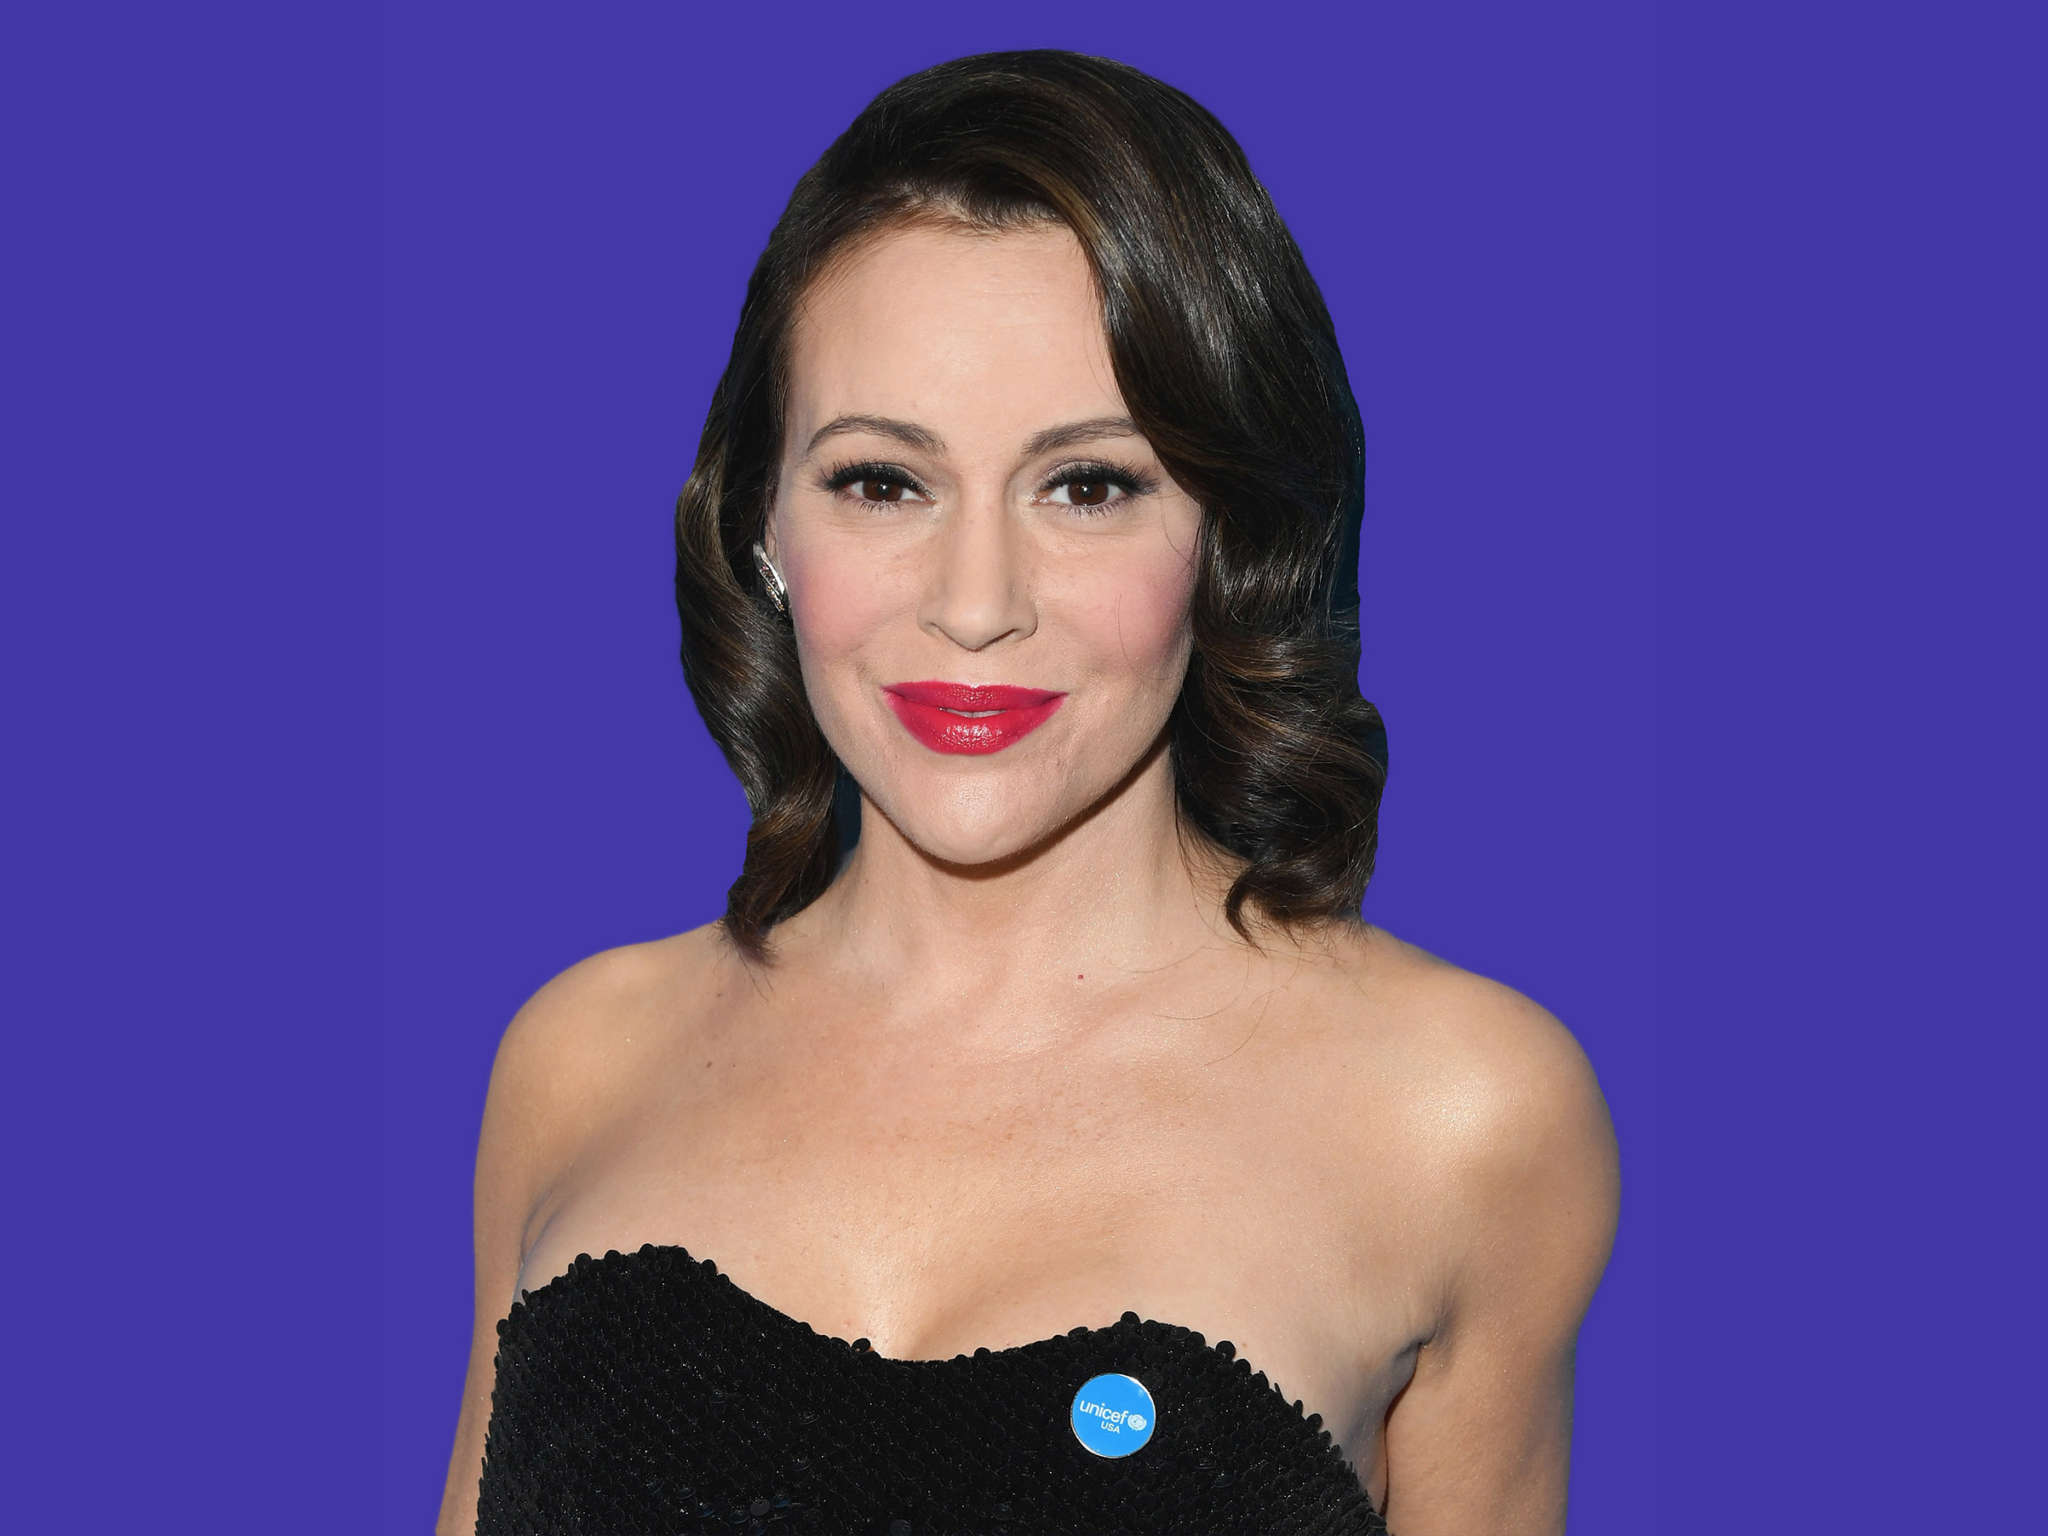 """alyssa-milano-reveals-shes-still-struggling-with-terrible-symptoms-after-covid-19-battle-including-extreme-hair-loss-and-brain-fog"""